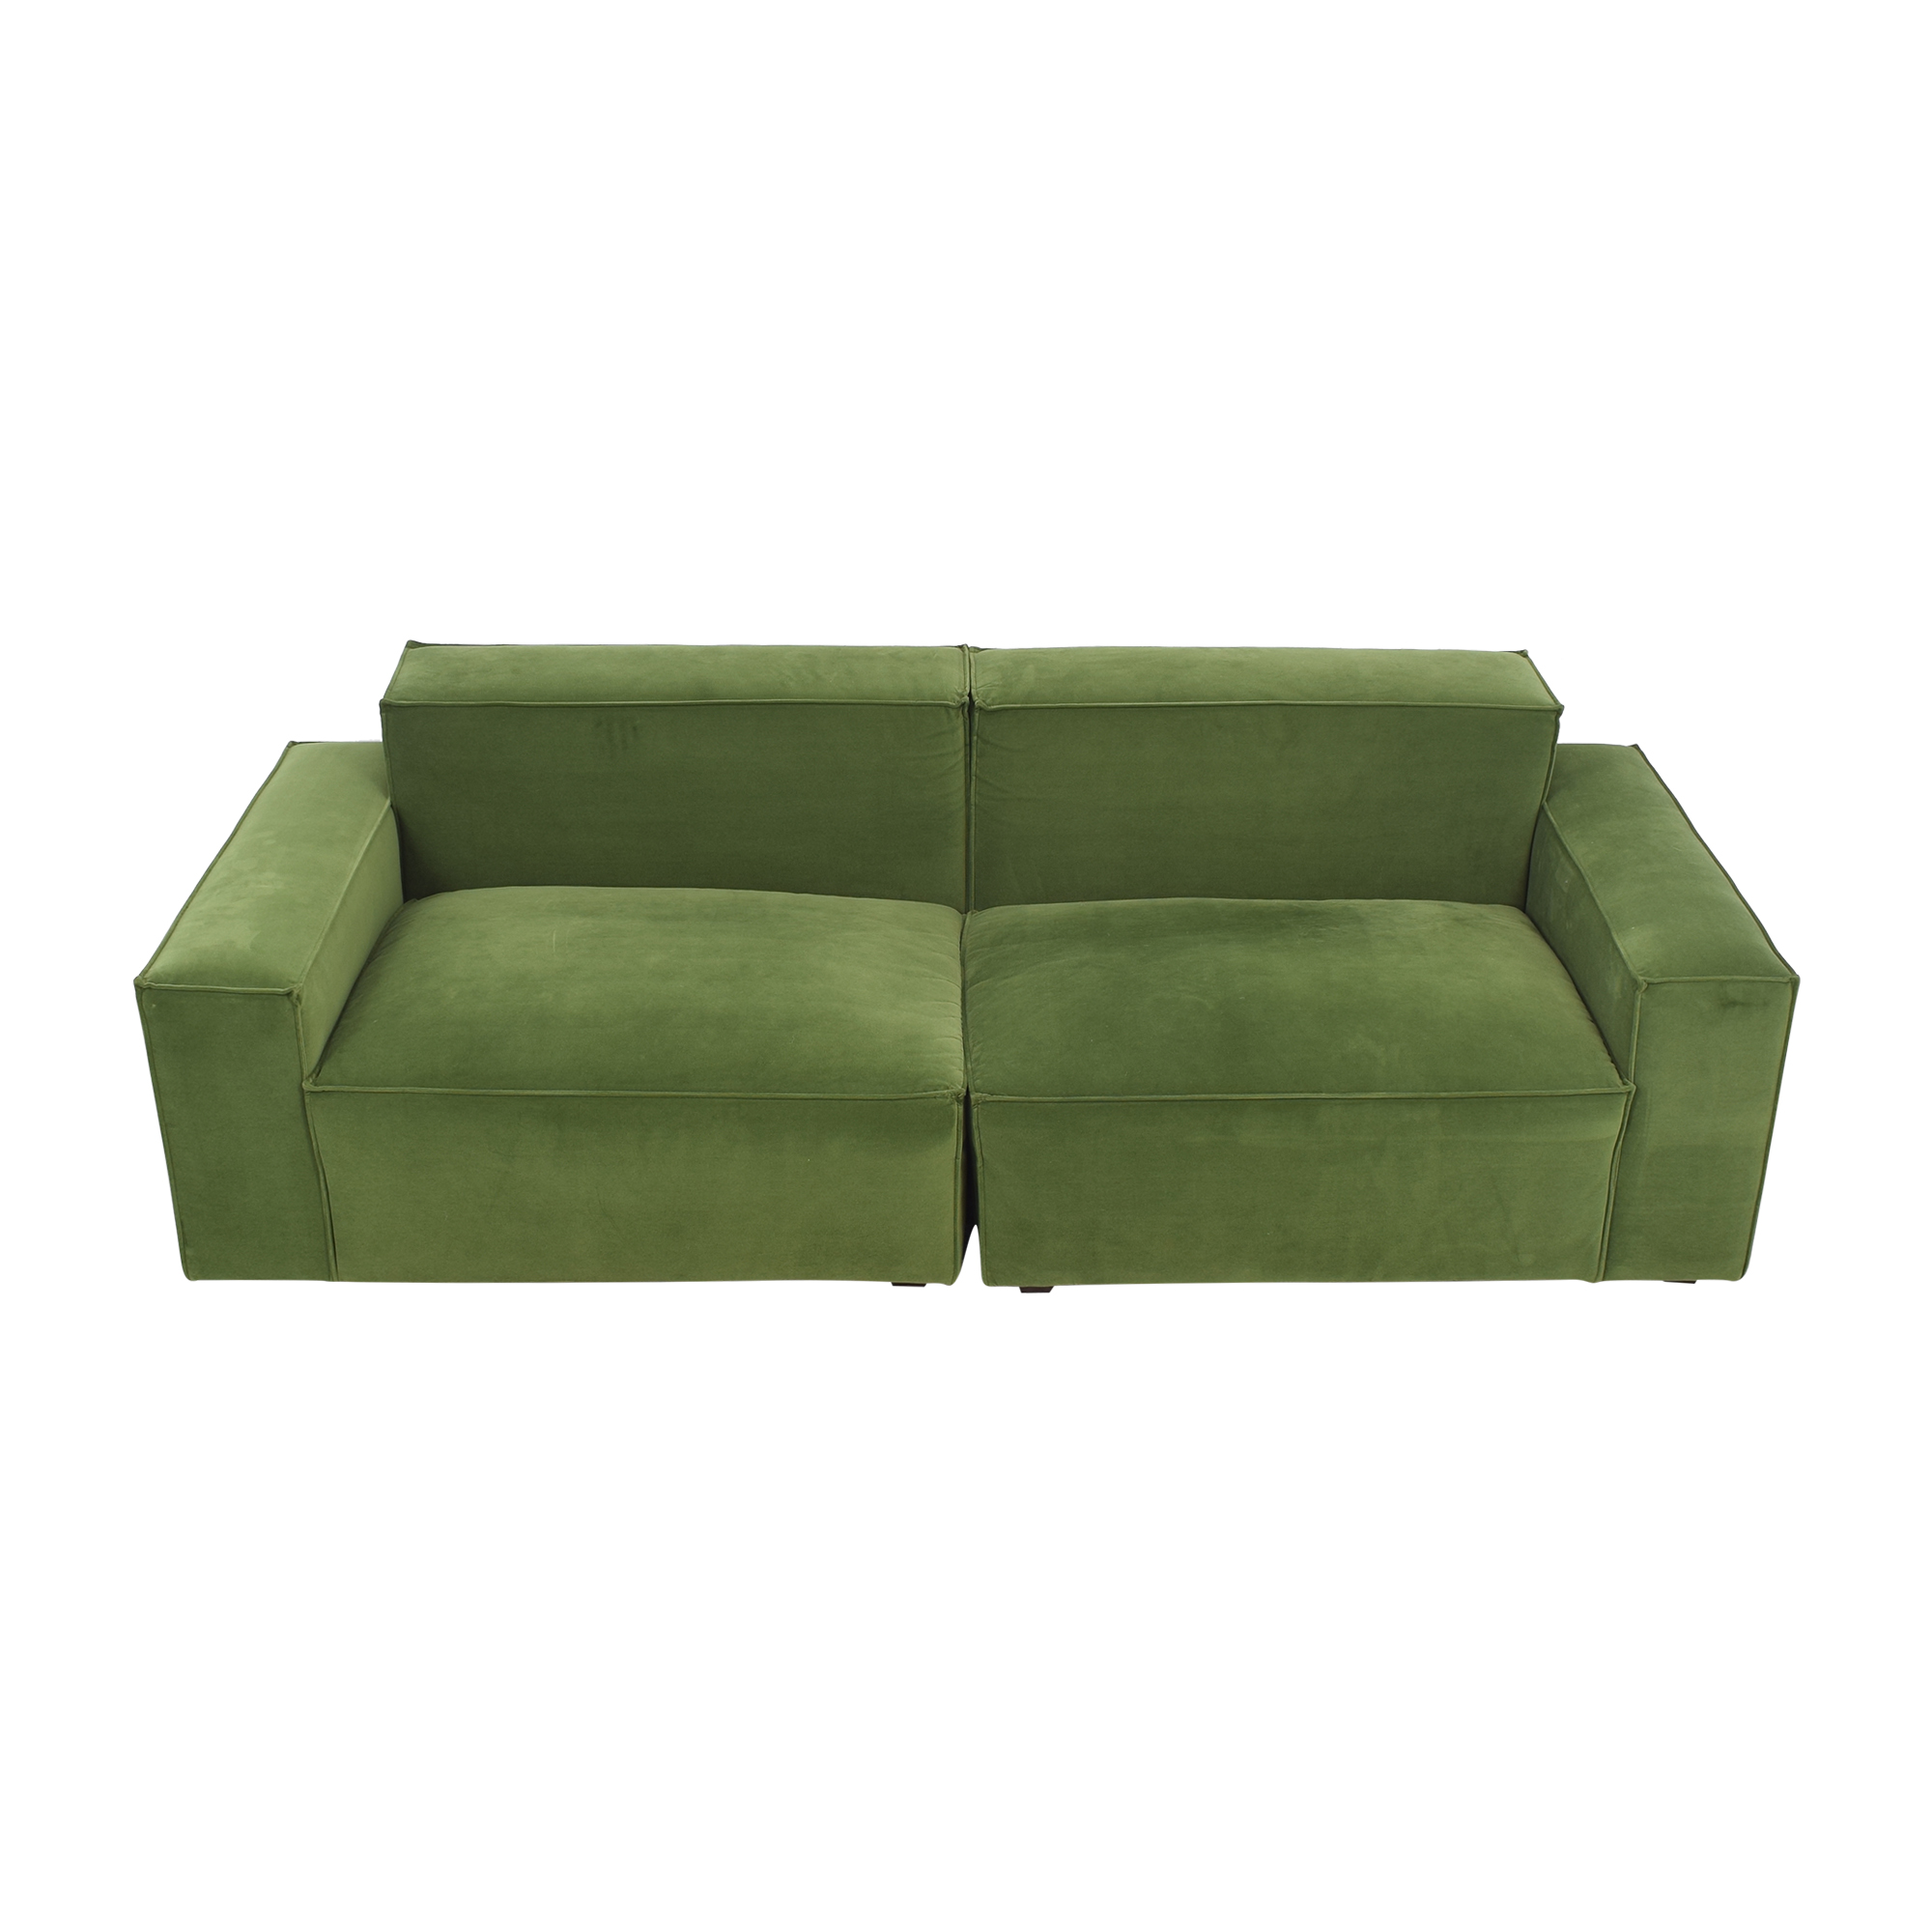 A.R.T. Furniture A.R.T. Raelyn Olafur Two Piece Modular Sectional Sofa Classic Sofas